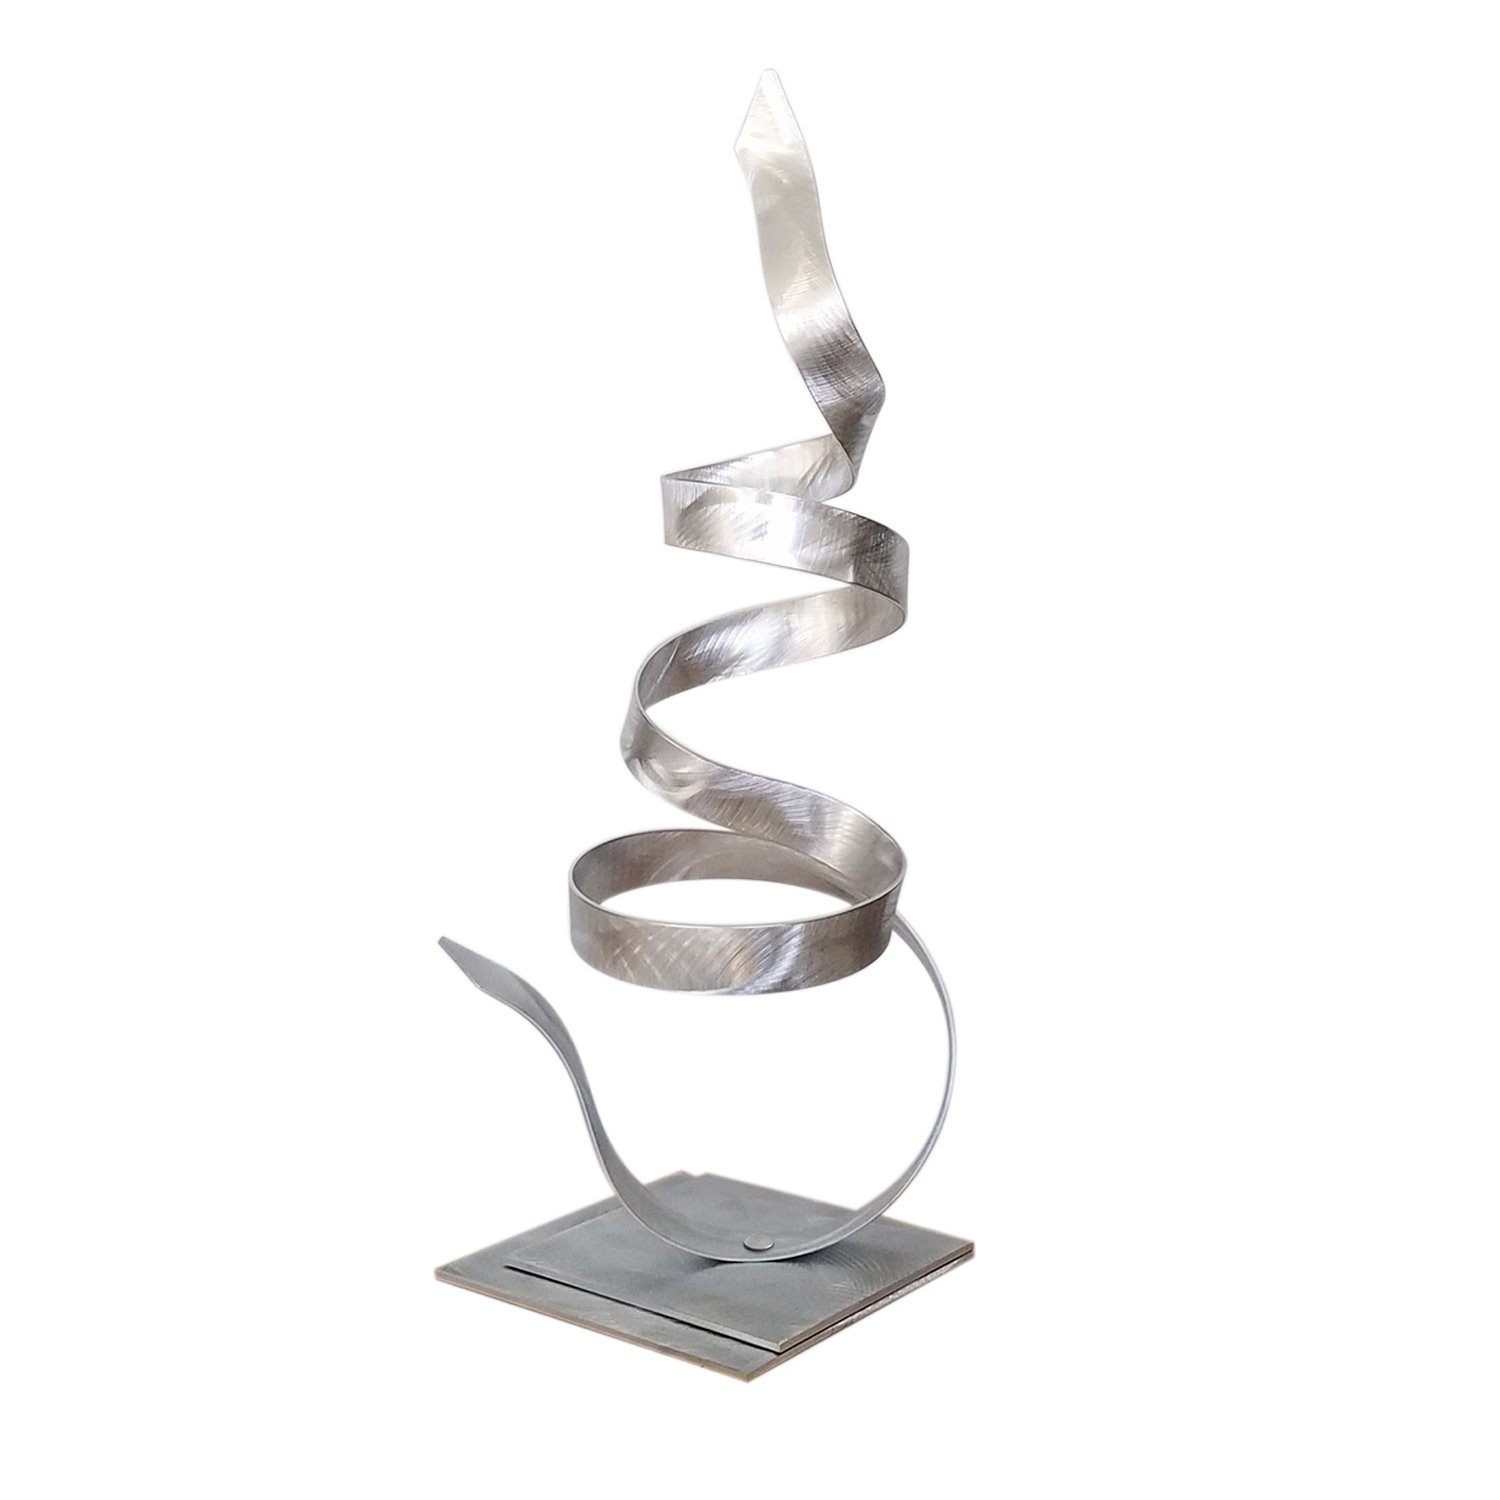 silver table sculpture modern metal art small accent abstract desk decor patio garden whisper jon allen home mission lamp cut crystal side west elm blog sauder furniture high and